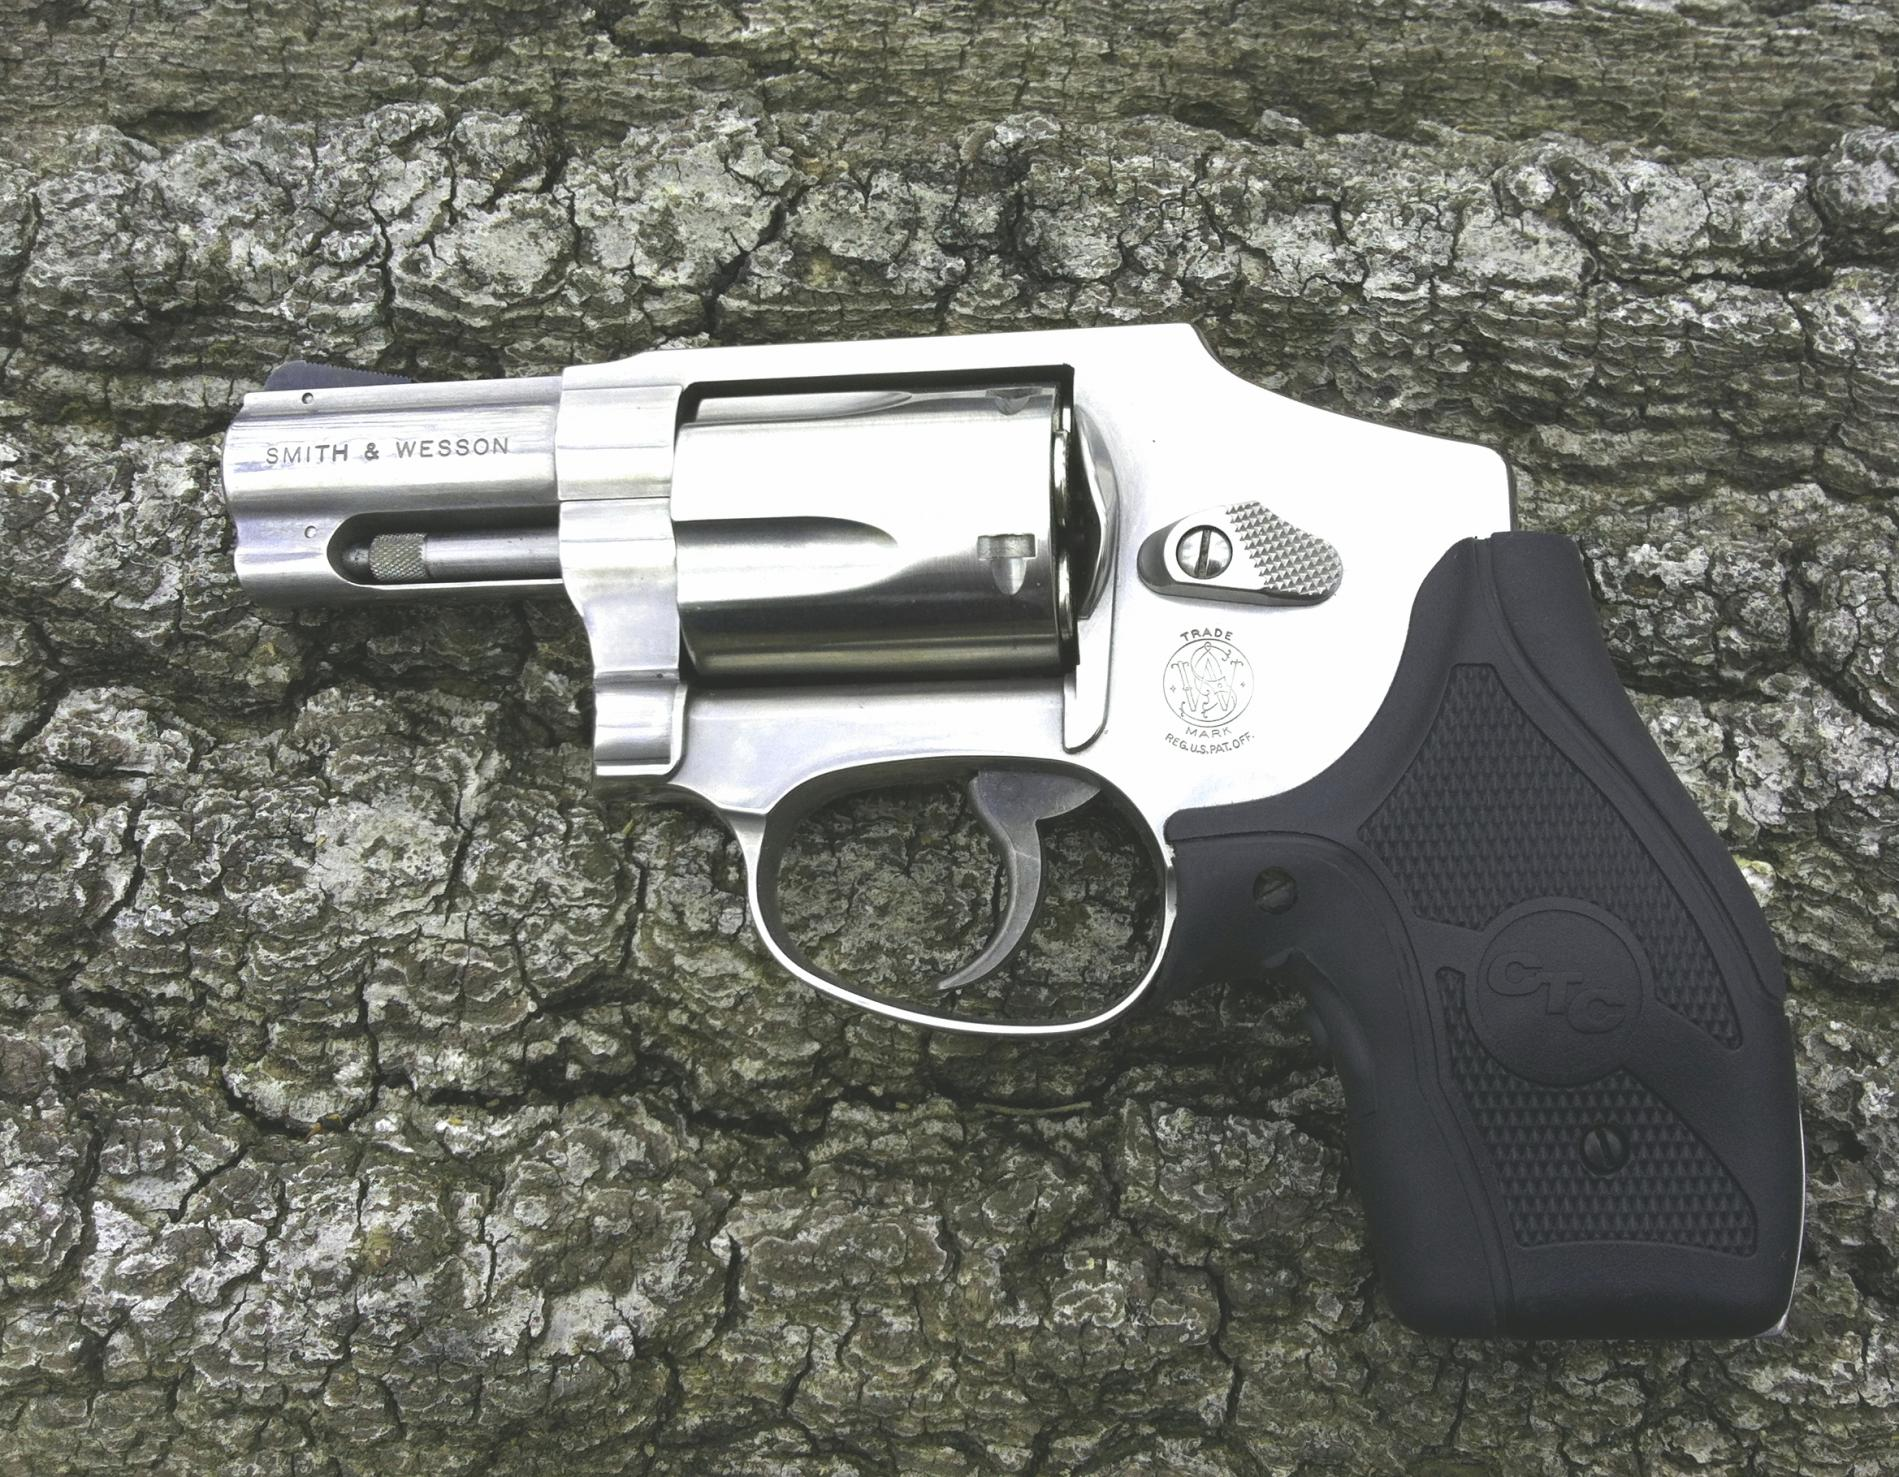 Revolver for CC for a woman?-640.-003.jpg